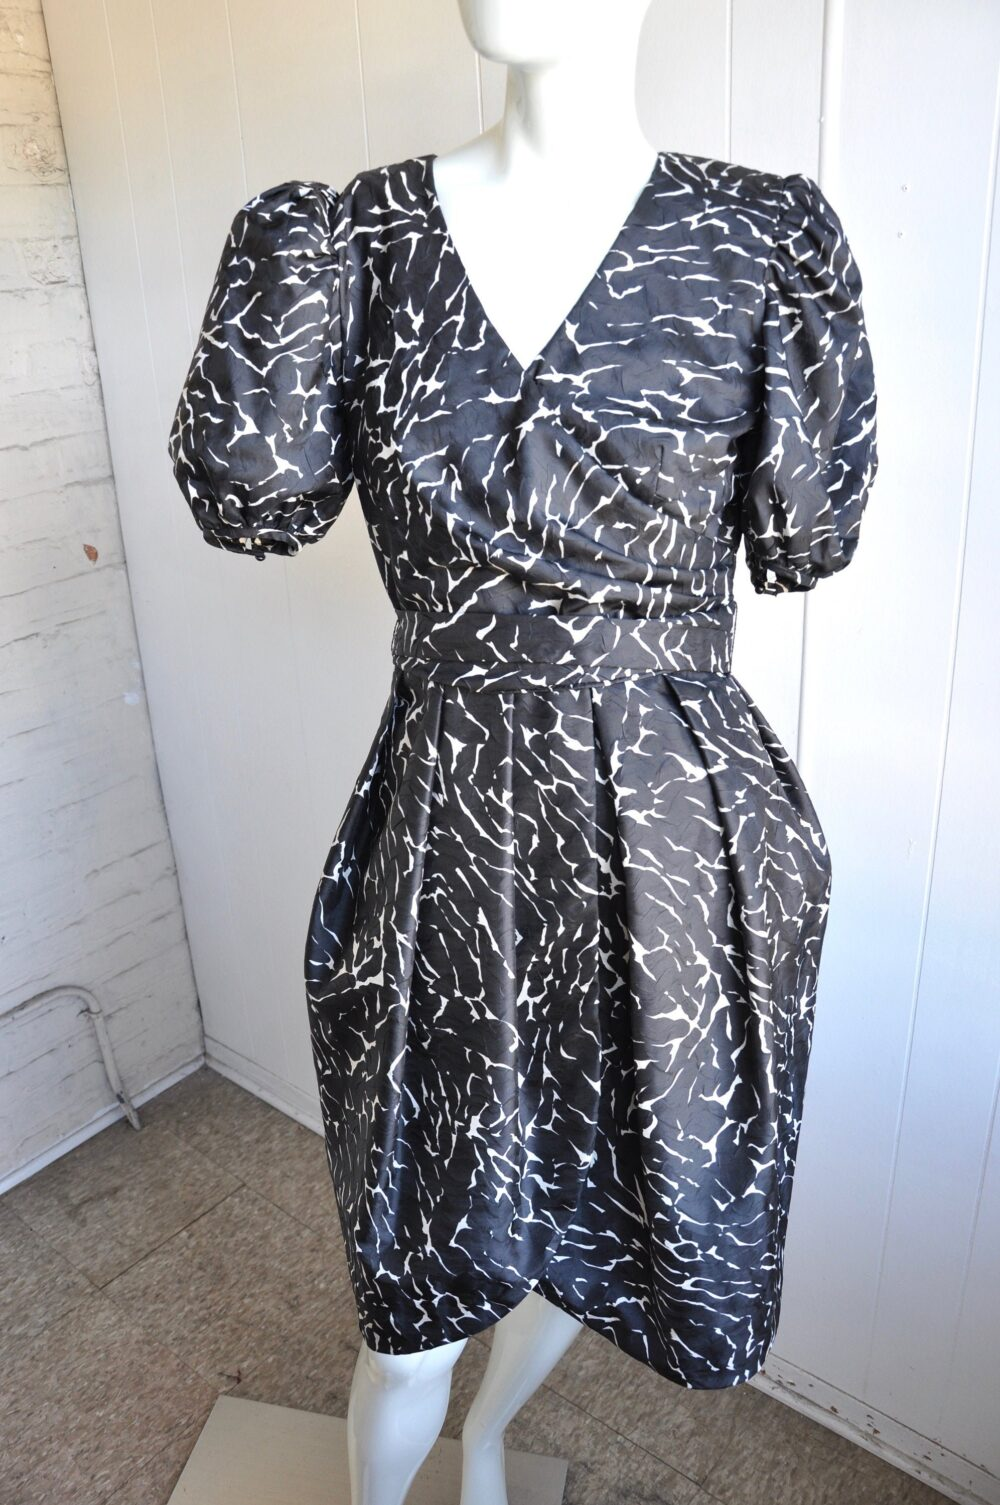 60S Neiman Marcus Black & White Party Dress with Balloon Skirt & Puffy Capped Sleeves, Size 8, Abstract/Geometric/Union Made/Hepburn